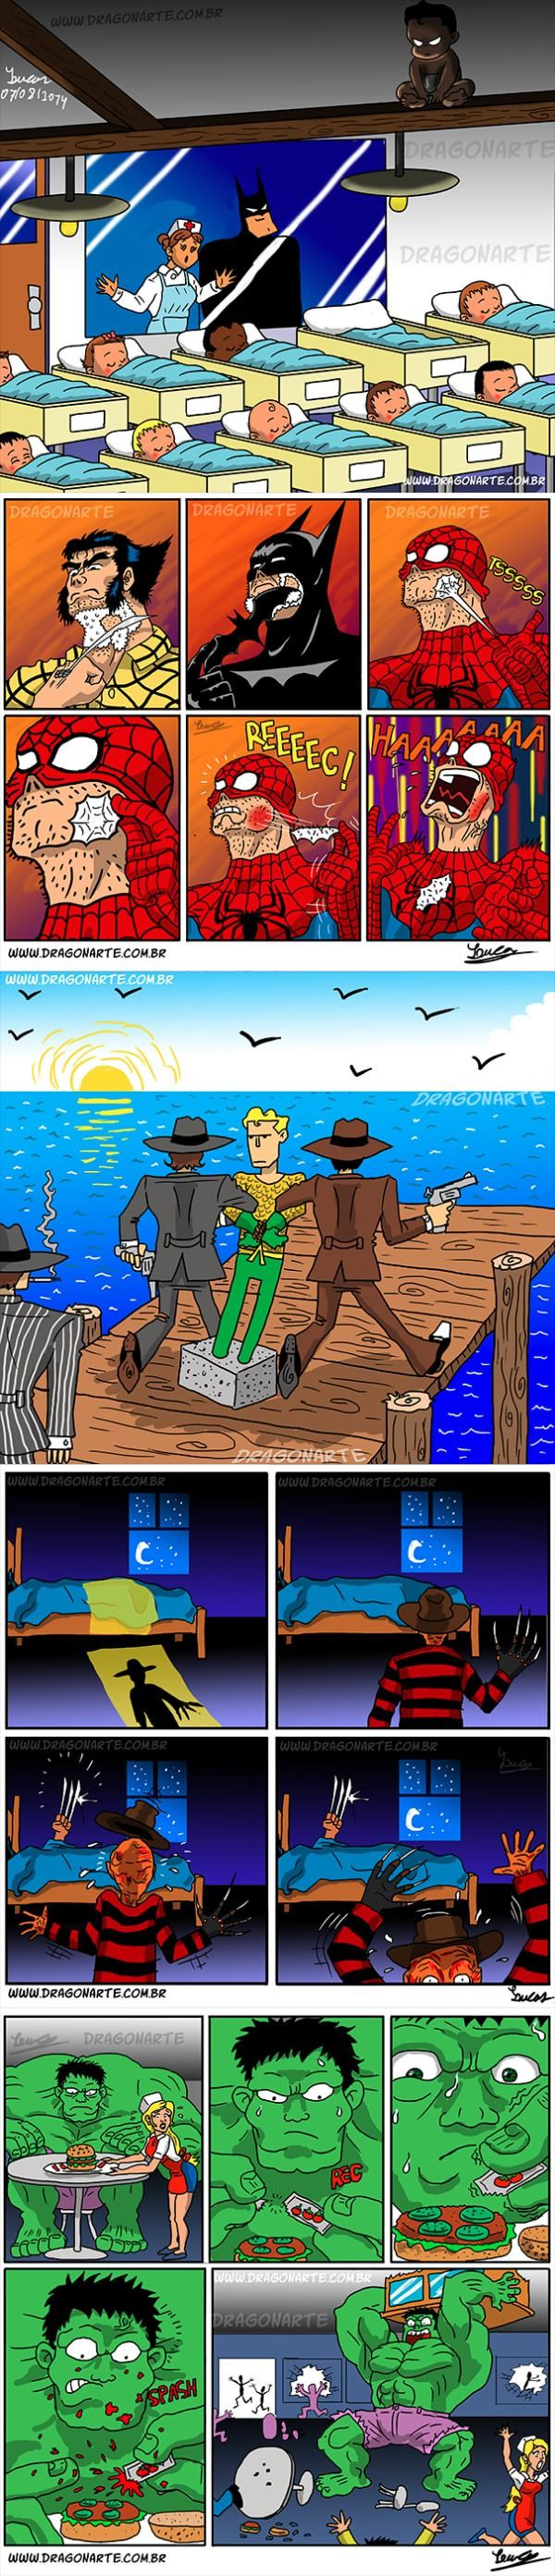 Look what happens when Freddy meets his match...Mob men think of drowning Aqua Man.. Spidey tried to shave-smart lol.. Haha.. Rofl :-D